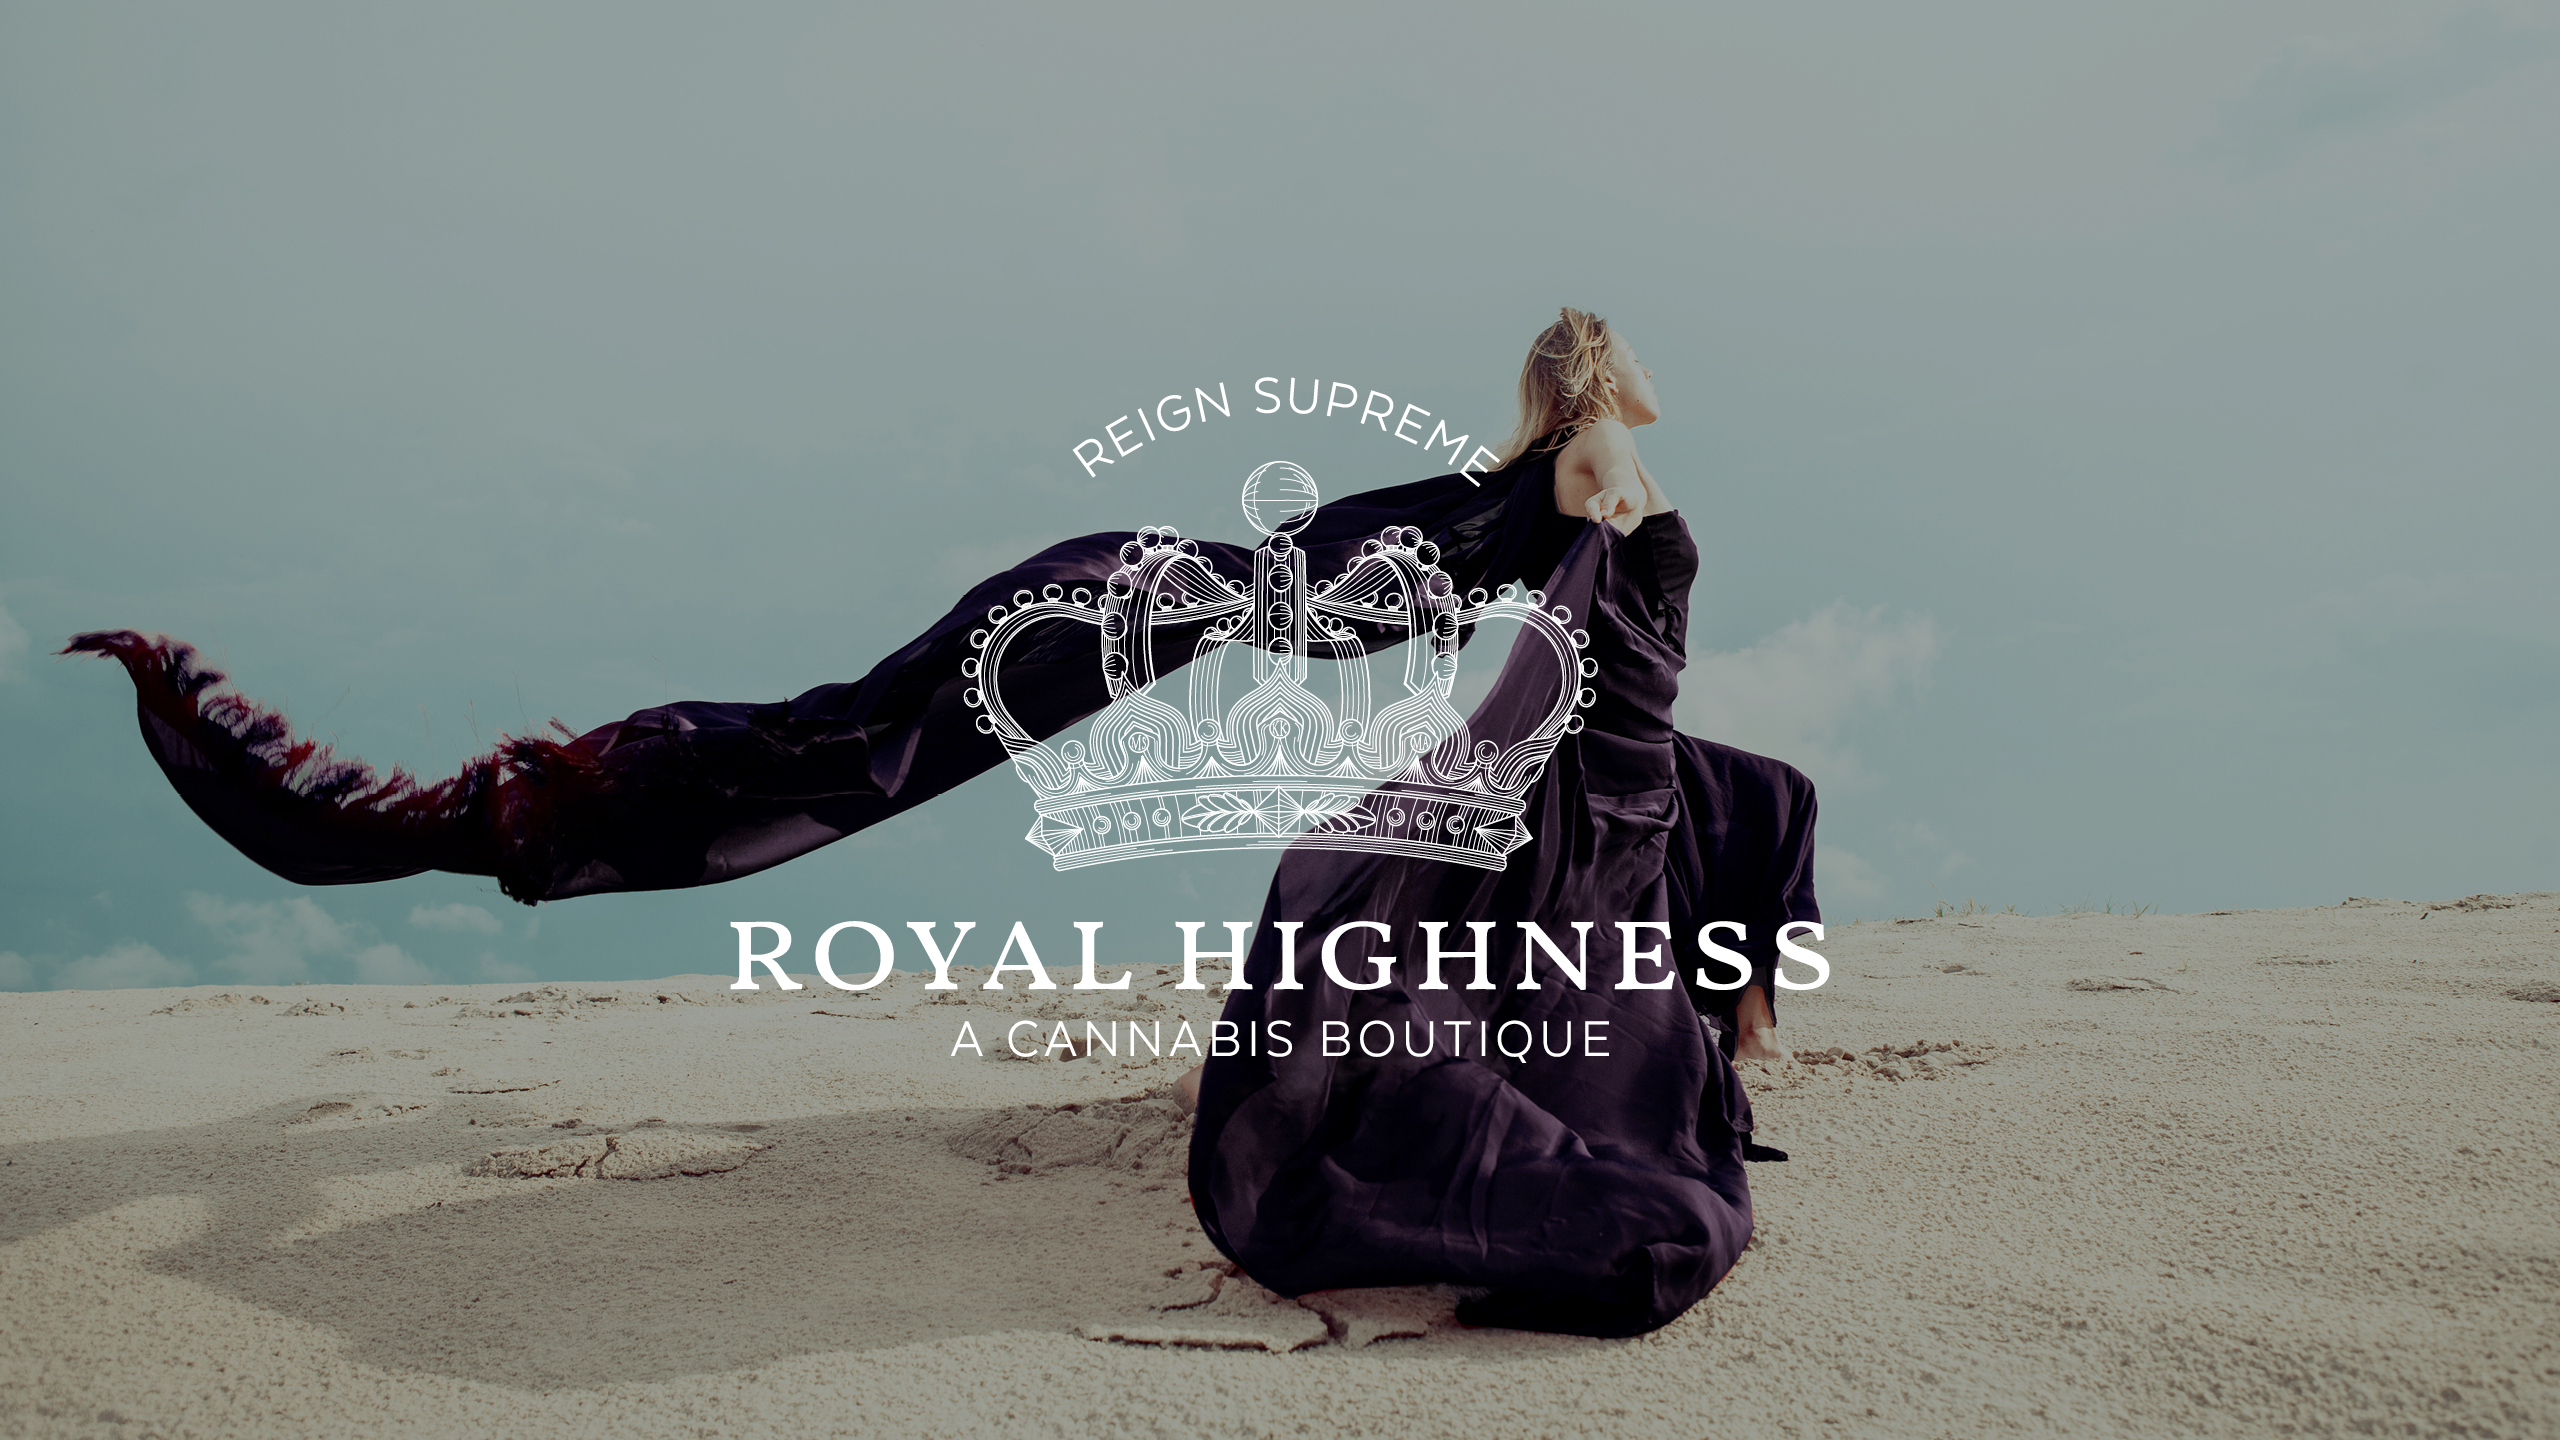 Royal Highness Brand Photography Selection by High Road Design Studio